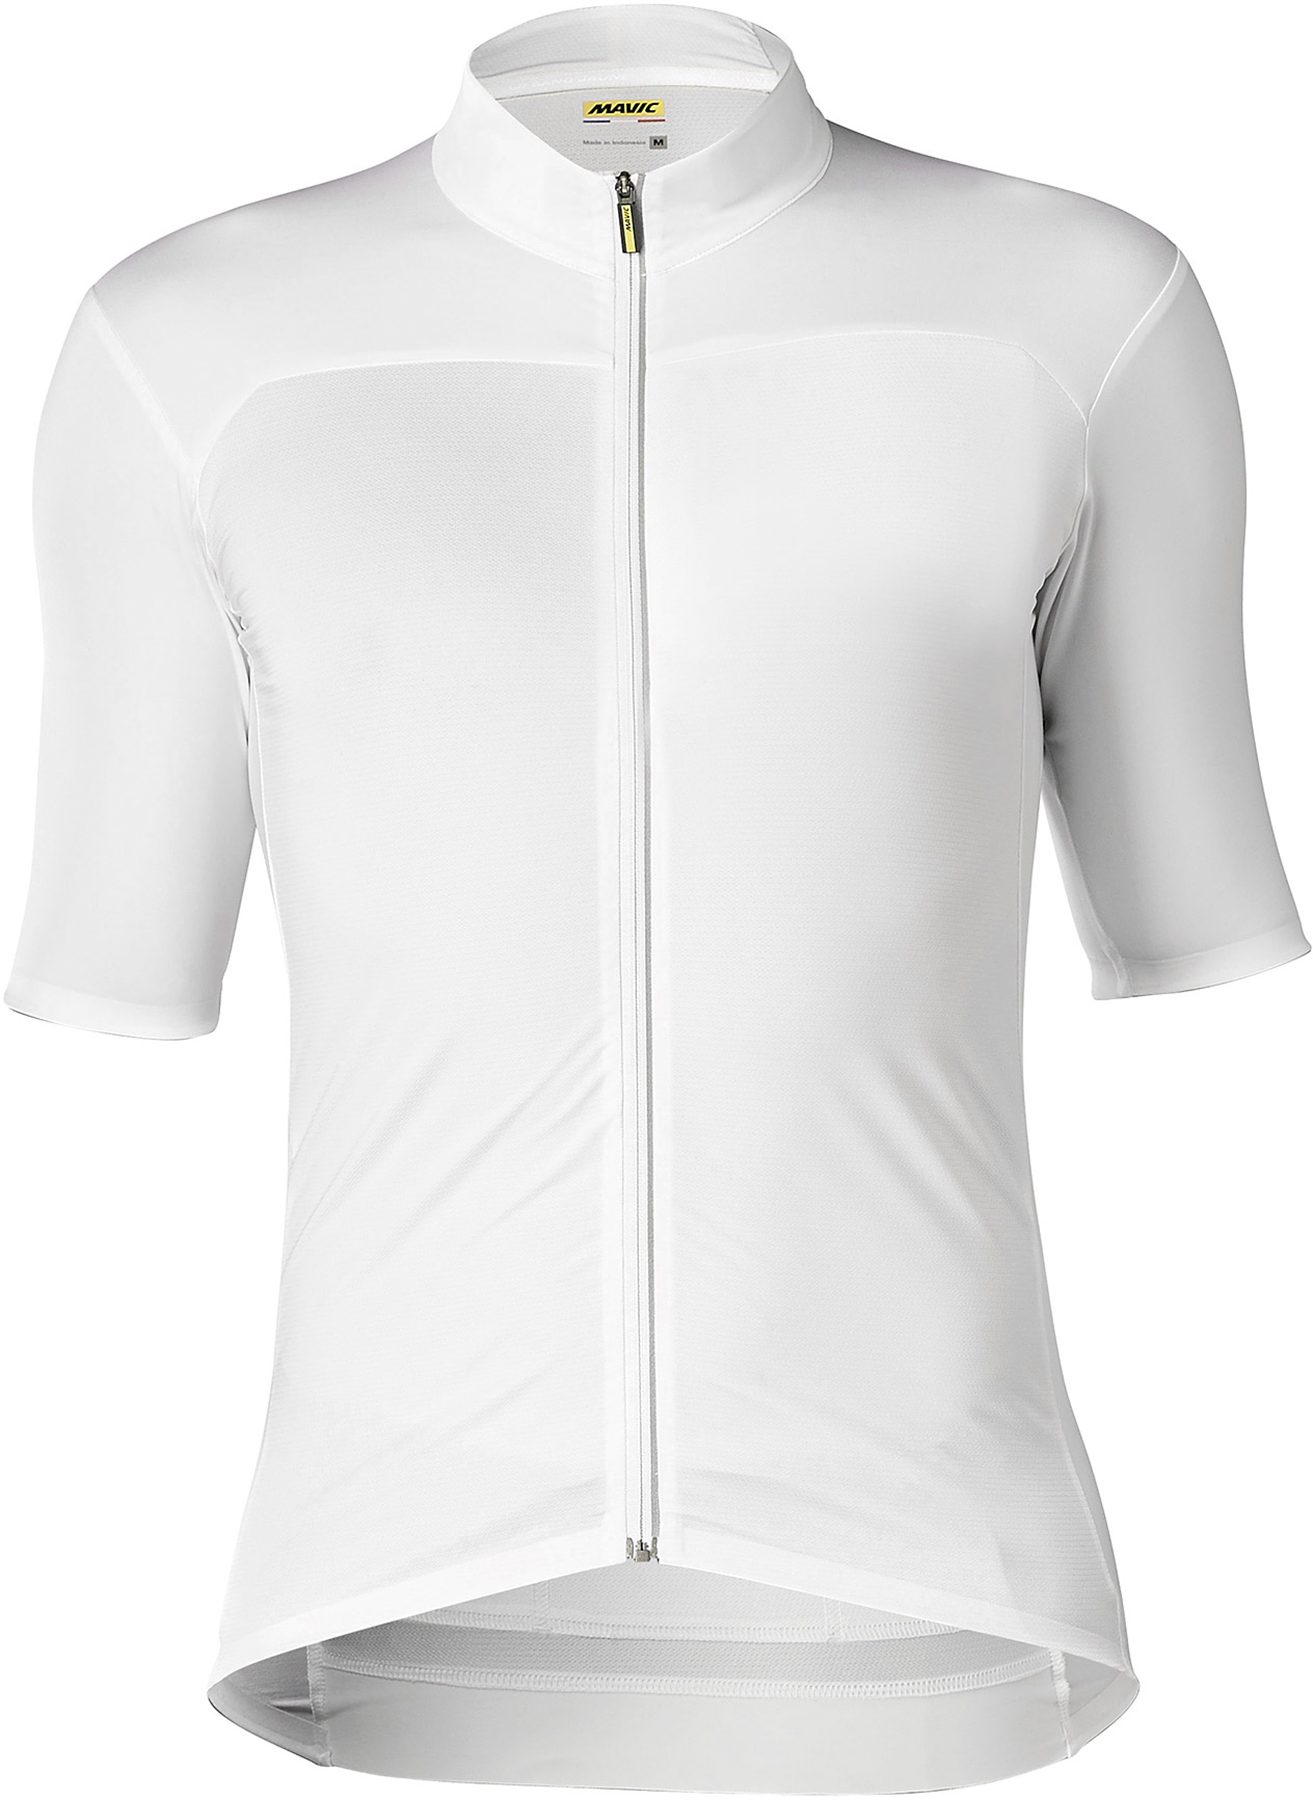 Mavic Essential Jersey | Jerseys